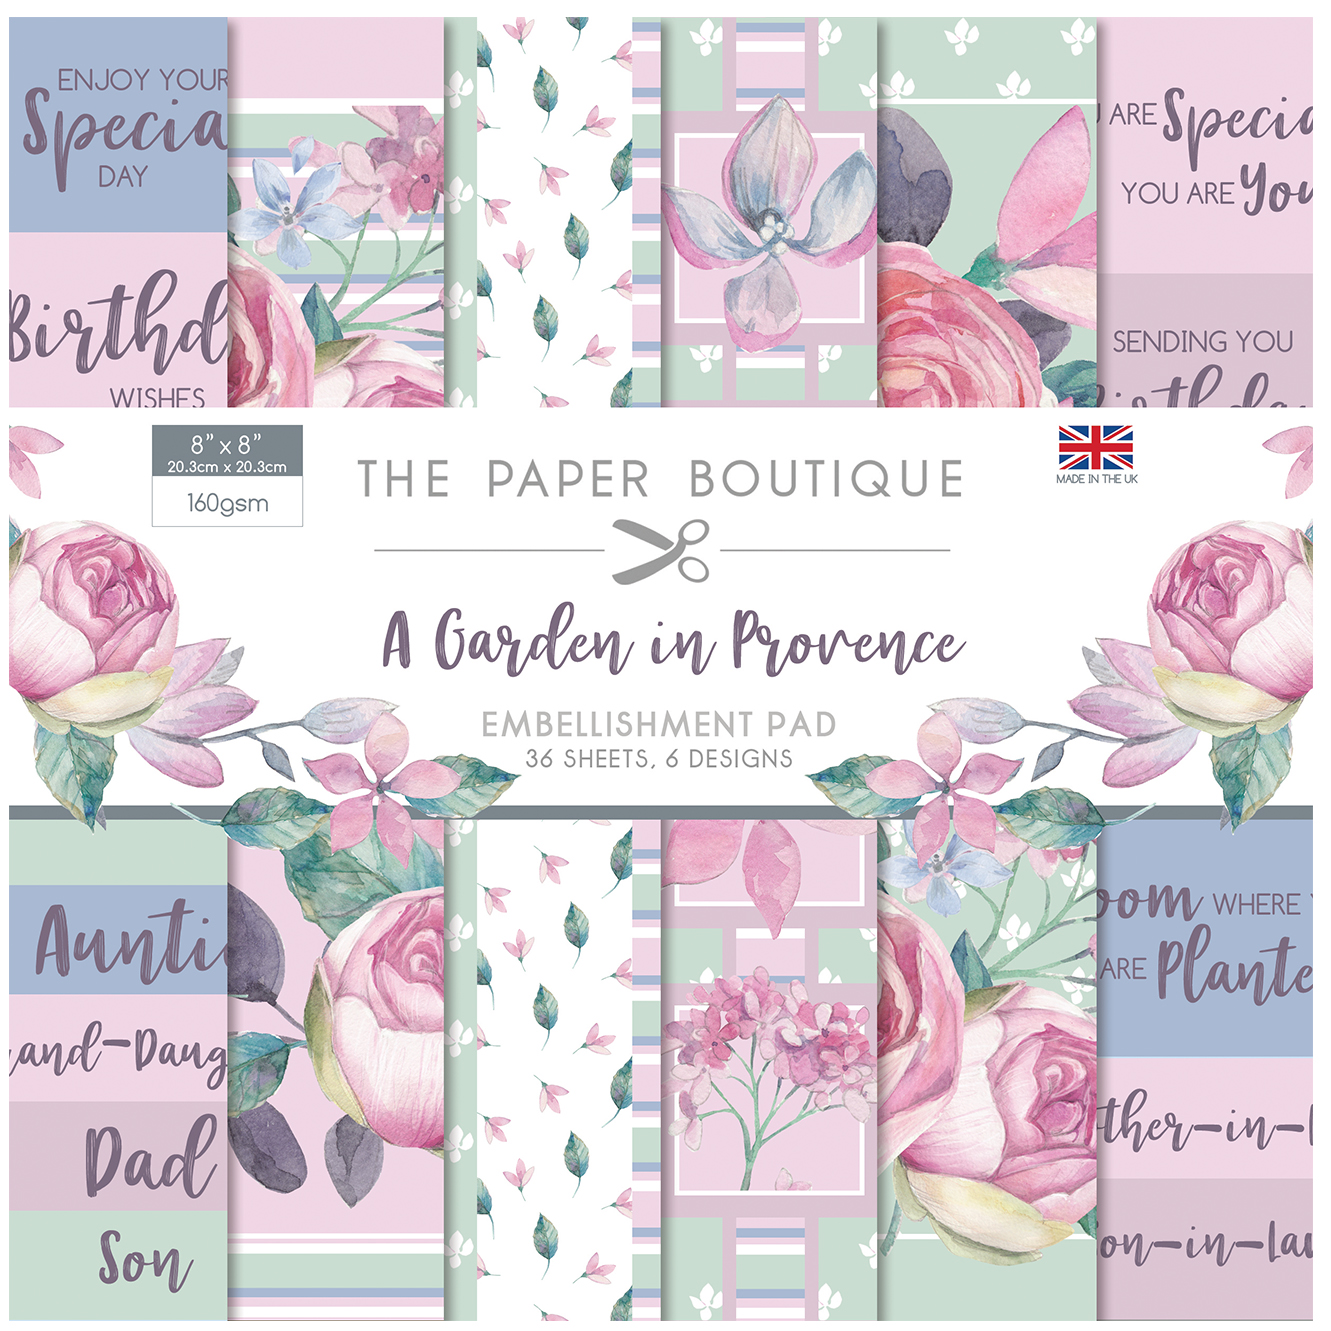 The Paper Boutique A Garden In Provence 8″ x 8″ Embellishment Pad